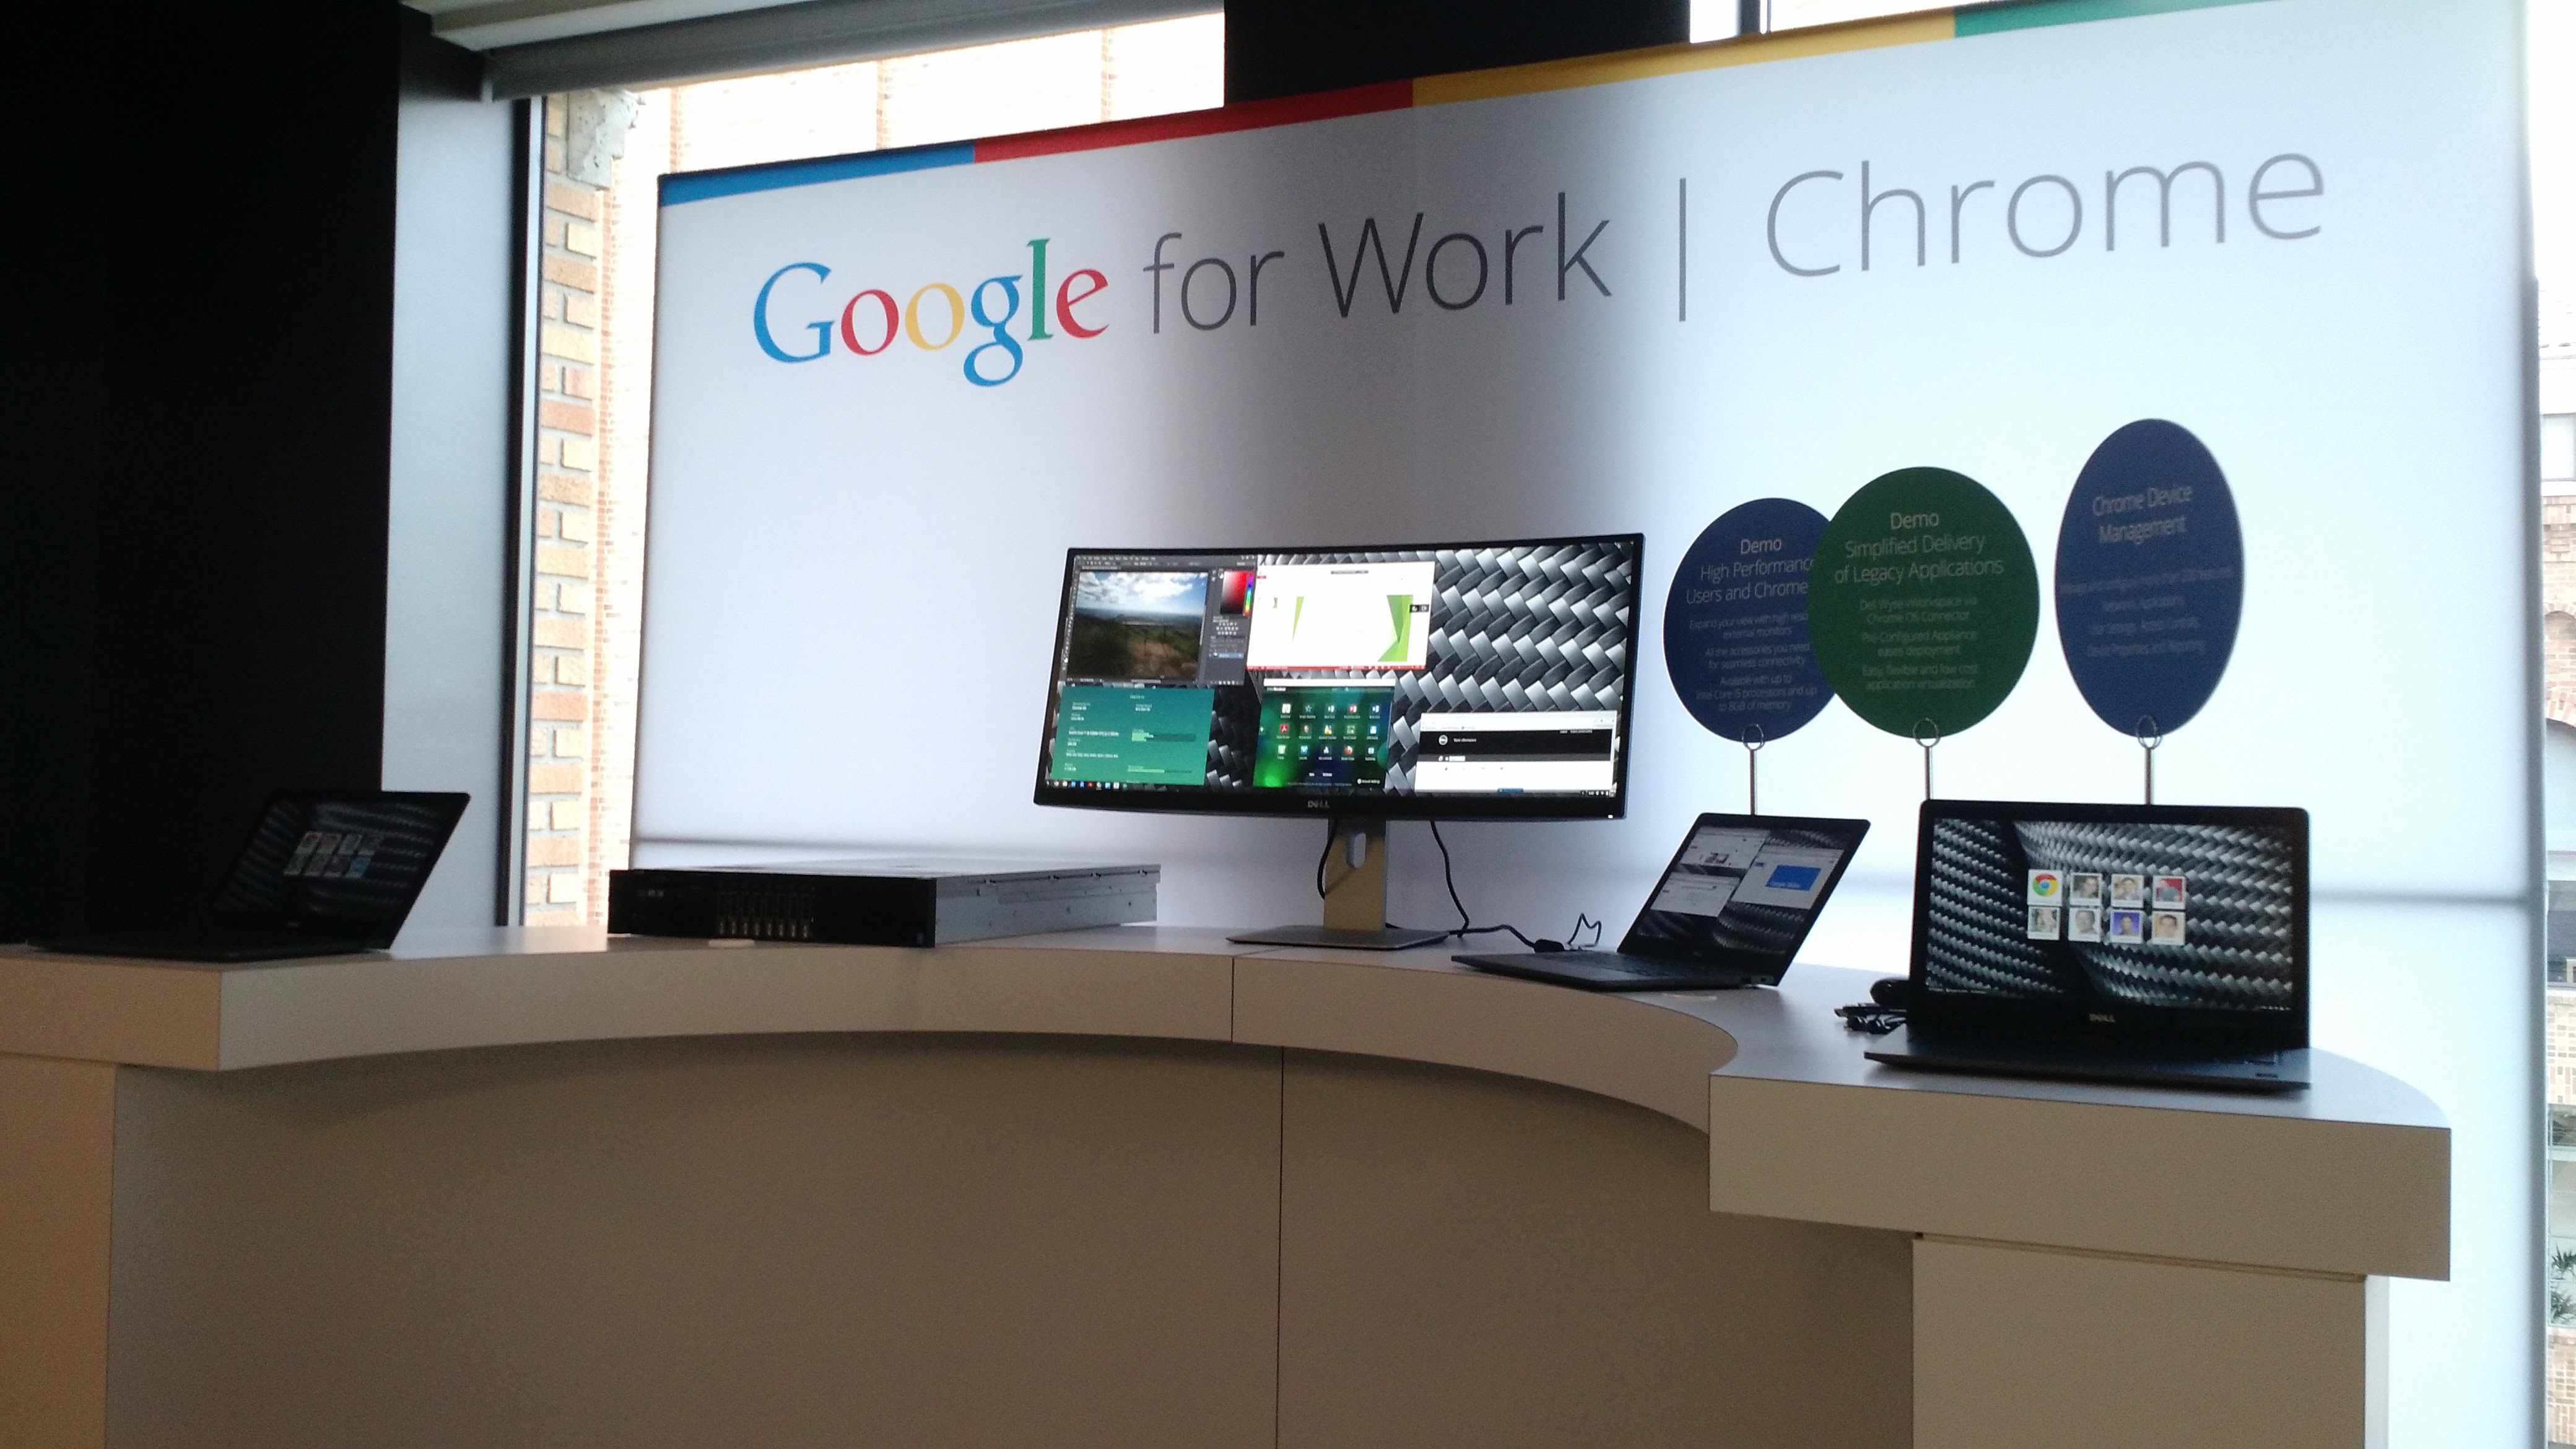 Chromebooks for Work. The big screen in the middle is running Microsoft Word and Adobe Photoshop.